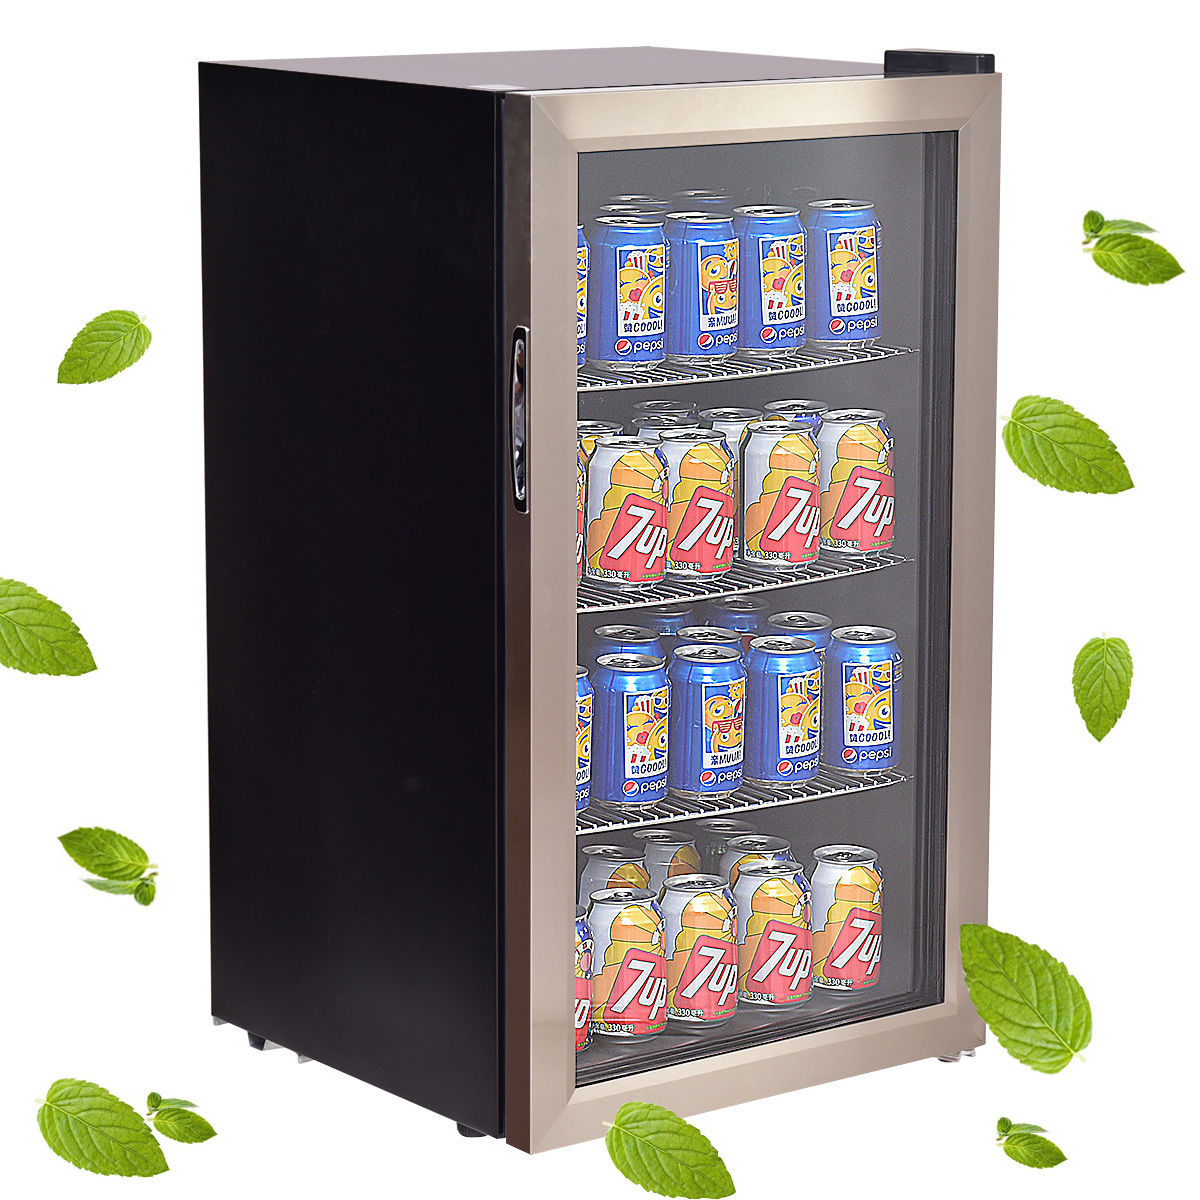 Costway 120 Can Beverage Refrigerator Beer Wine Soda Drink Cooler Mini Fridge Glass Door